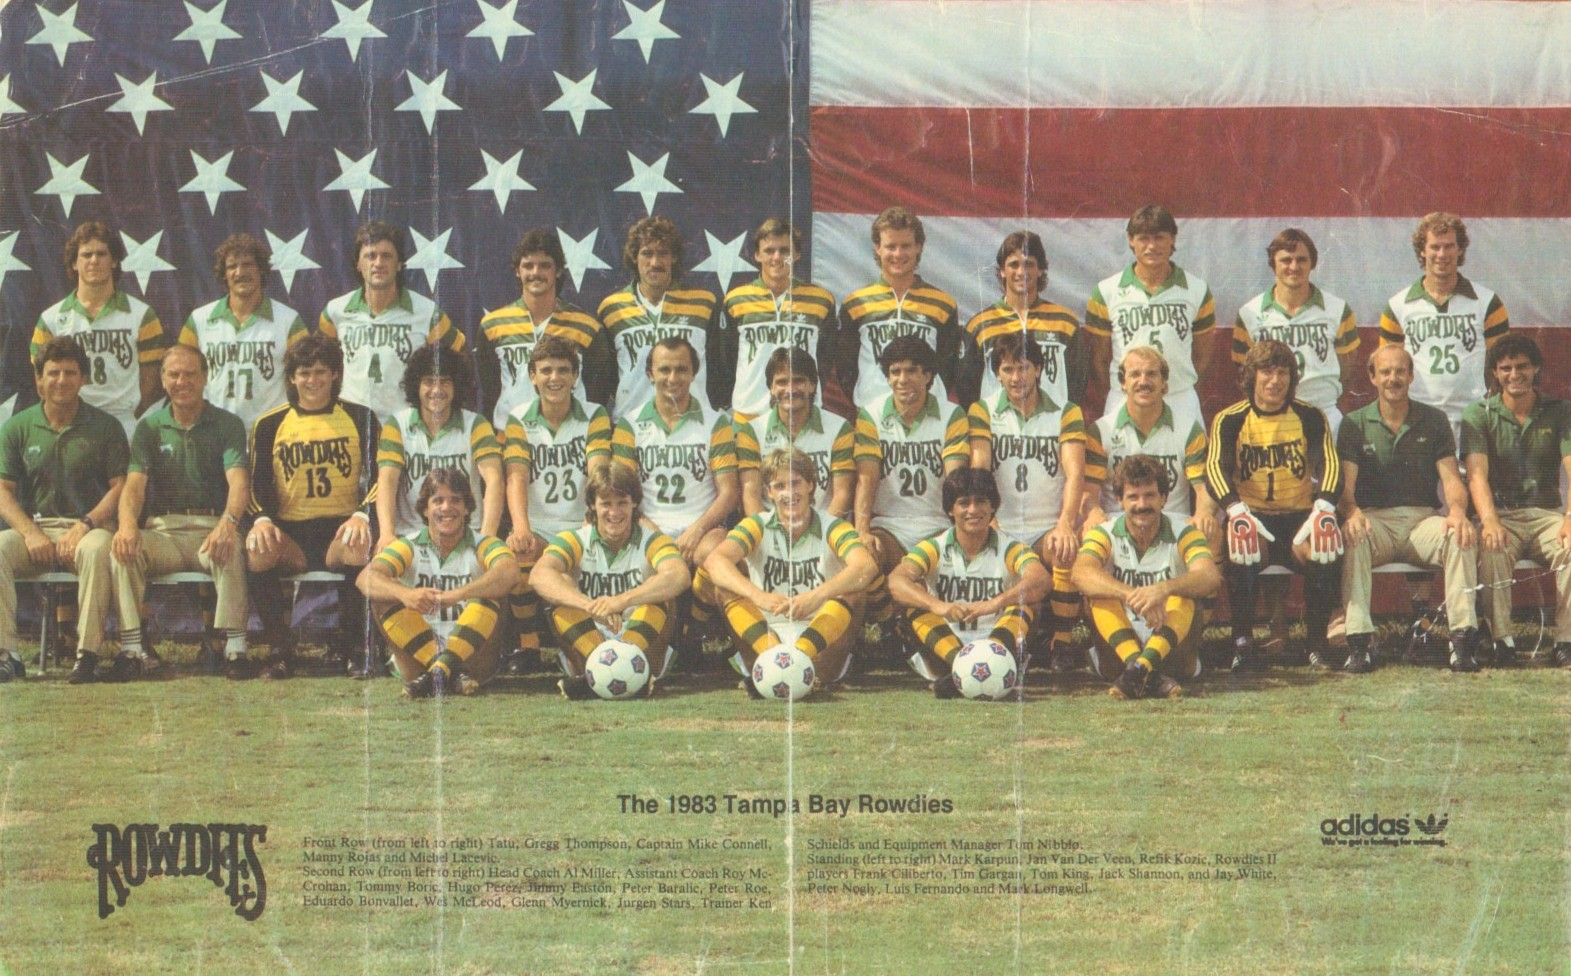 Rowdies 83 Home Team.jpg